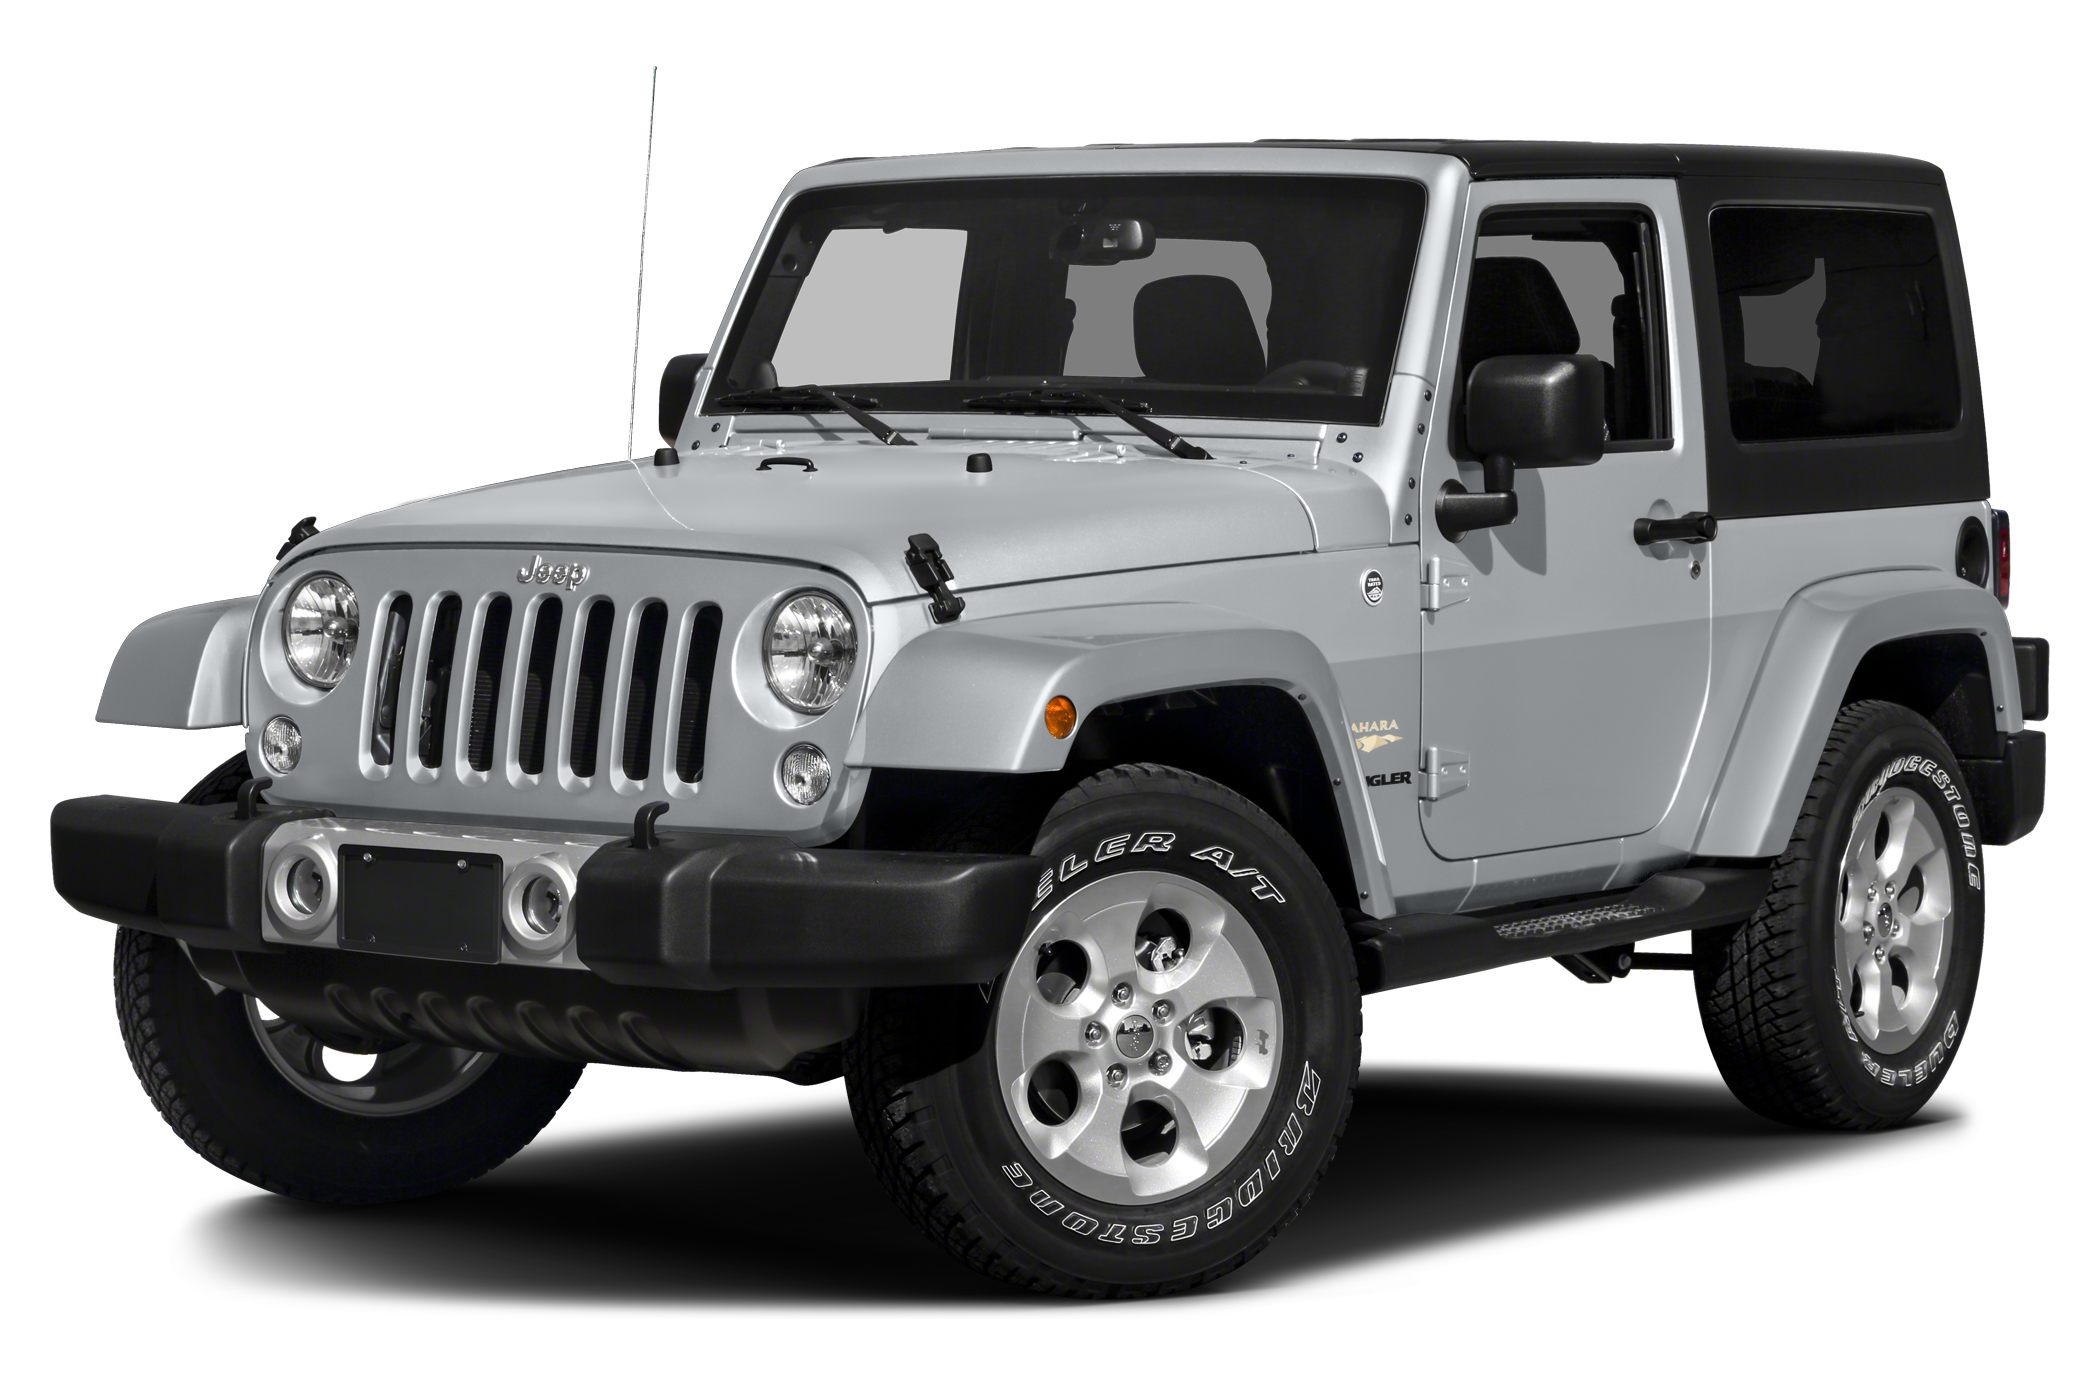 2016 Jeep Wrangler Sahara This special Internet buy for price reflects all applicable manufacturer